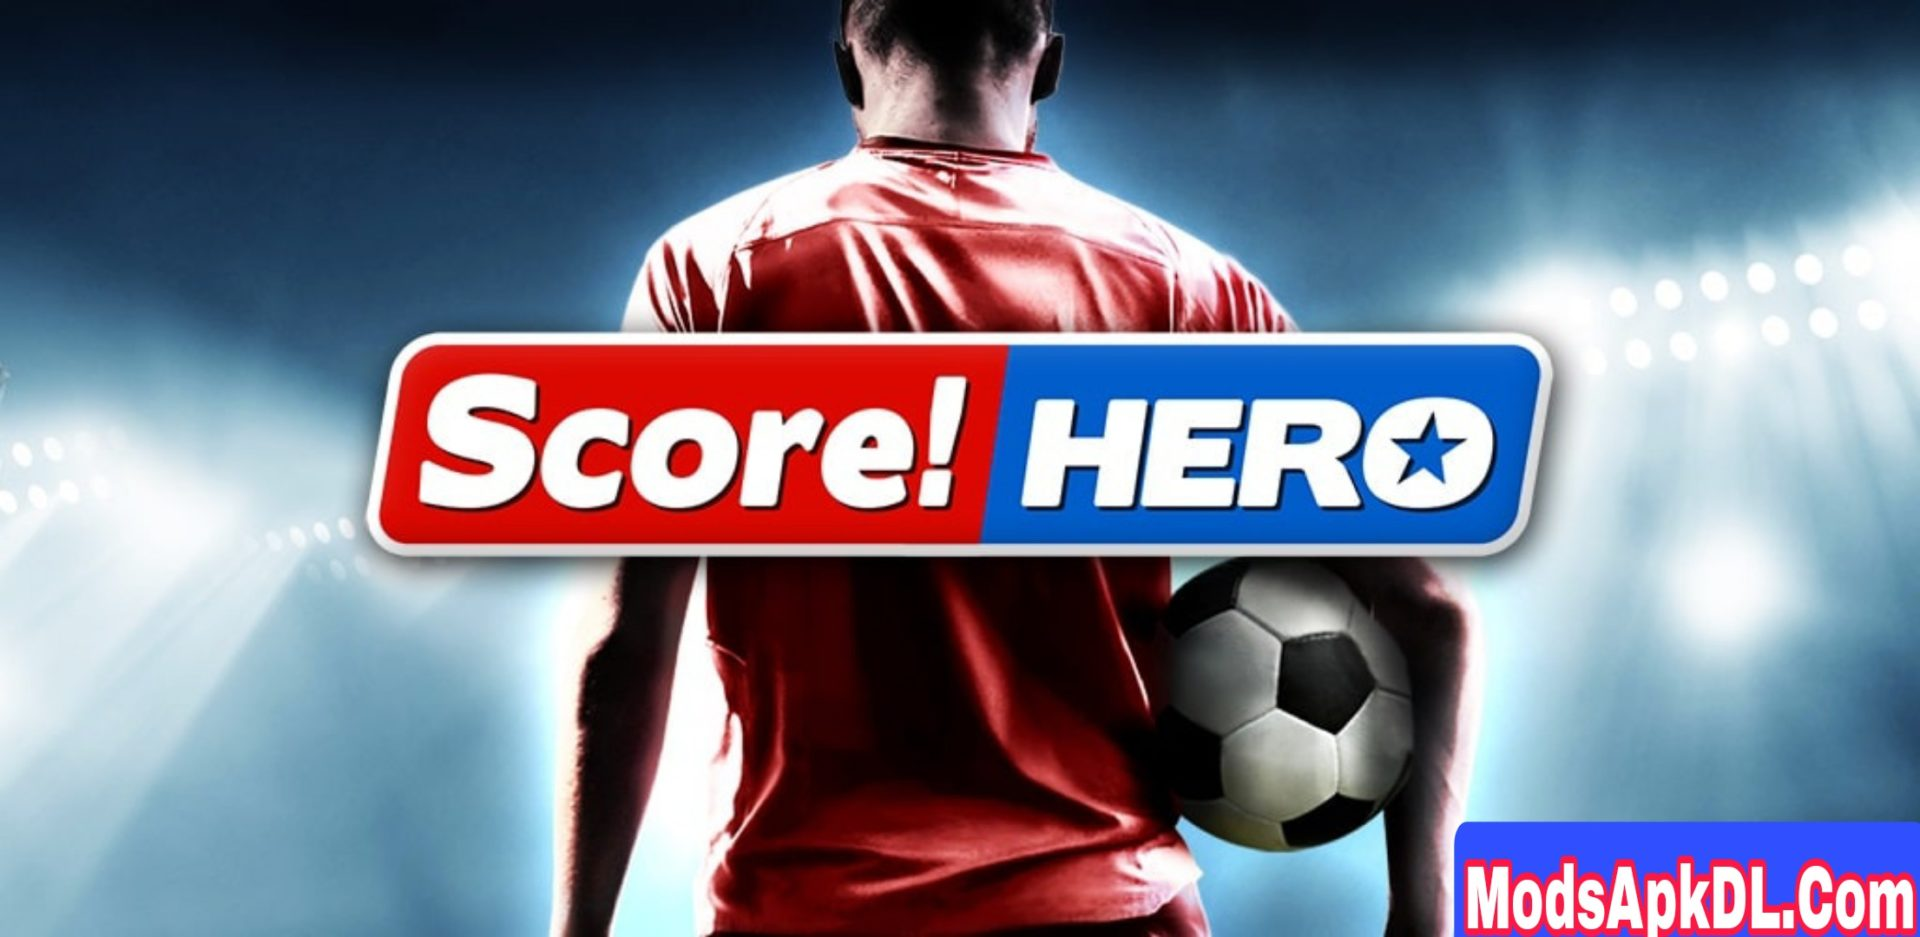 Score! Hero MOD APK v2.75 (Unlimited Money) For Android